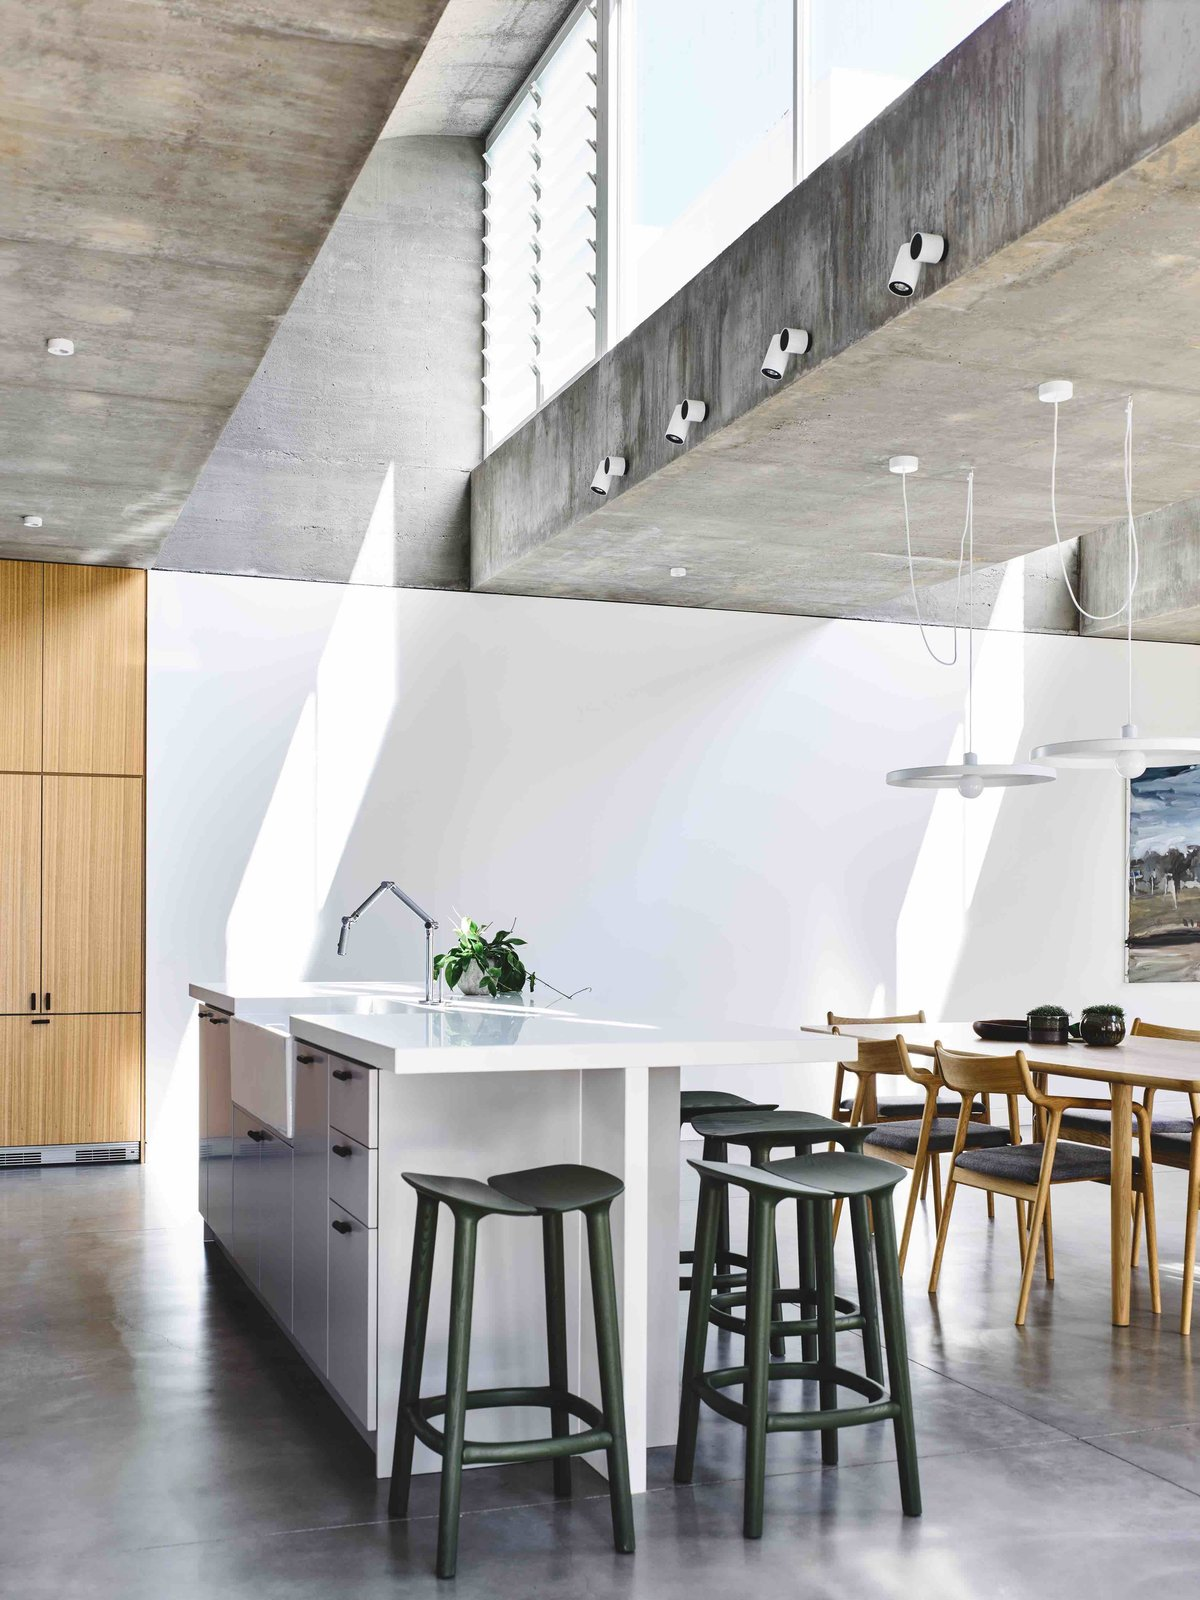 Dining Room, Bar, Stools, Accent Lighting, Concrete Floor, Chair, Table, and Storage  Photo 6 of 11 in Vaulted Skylights and Concrete Columns Connect This Melbourne Home With the Sun